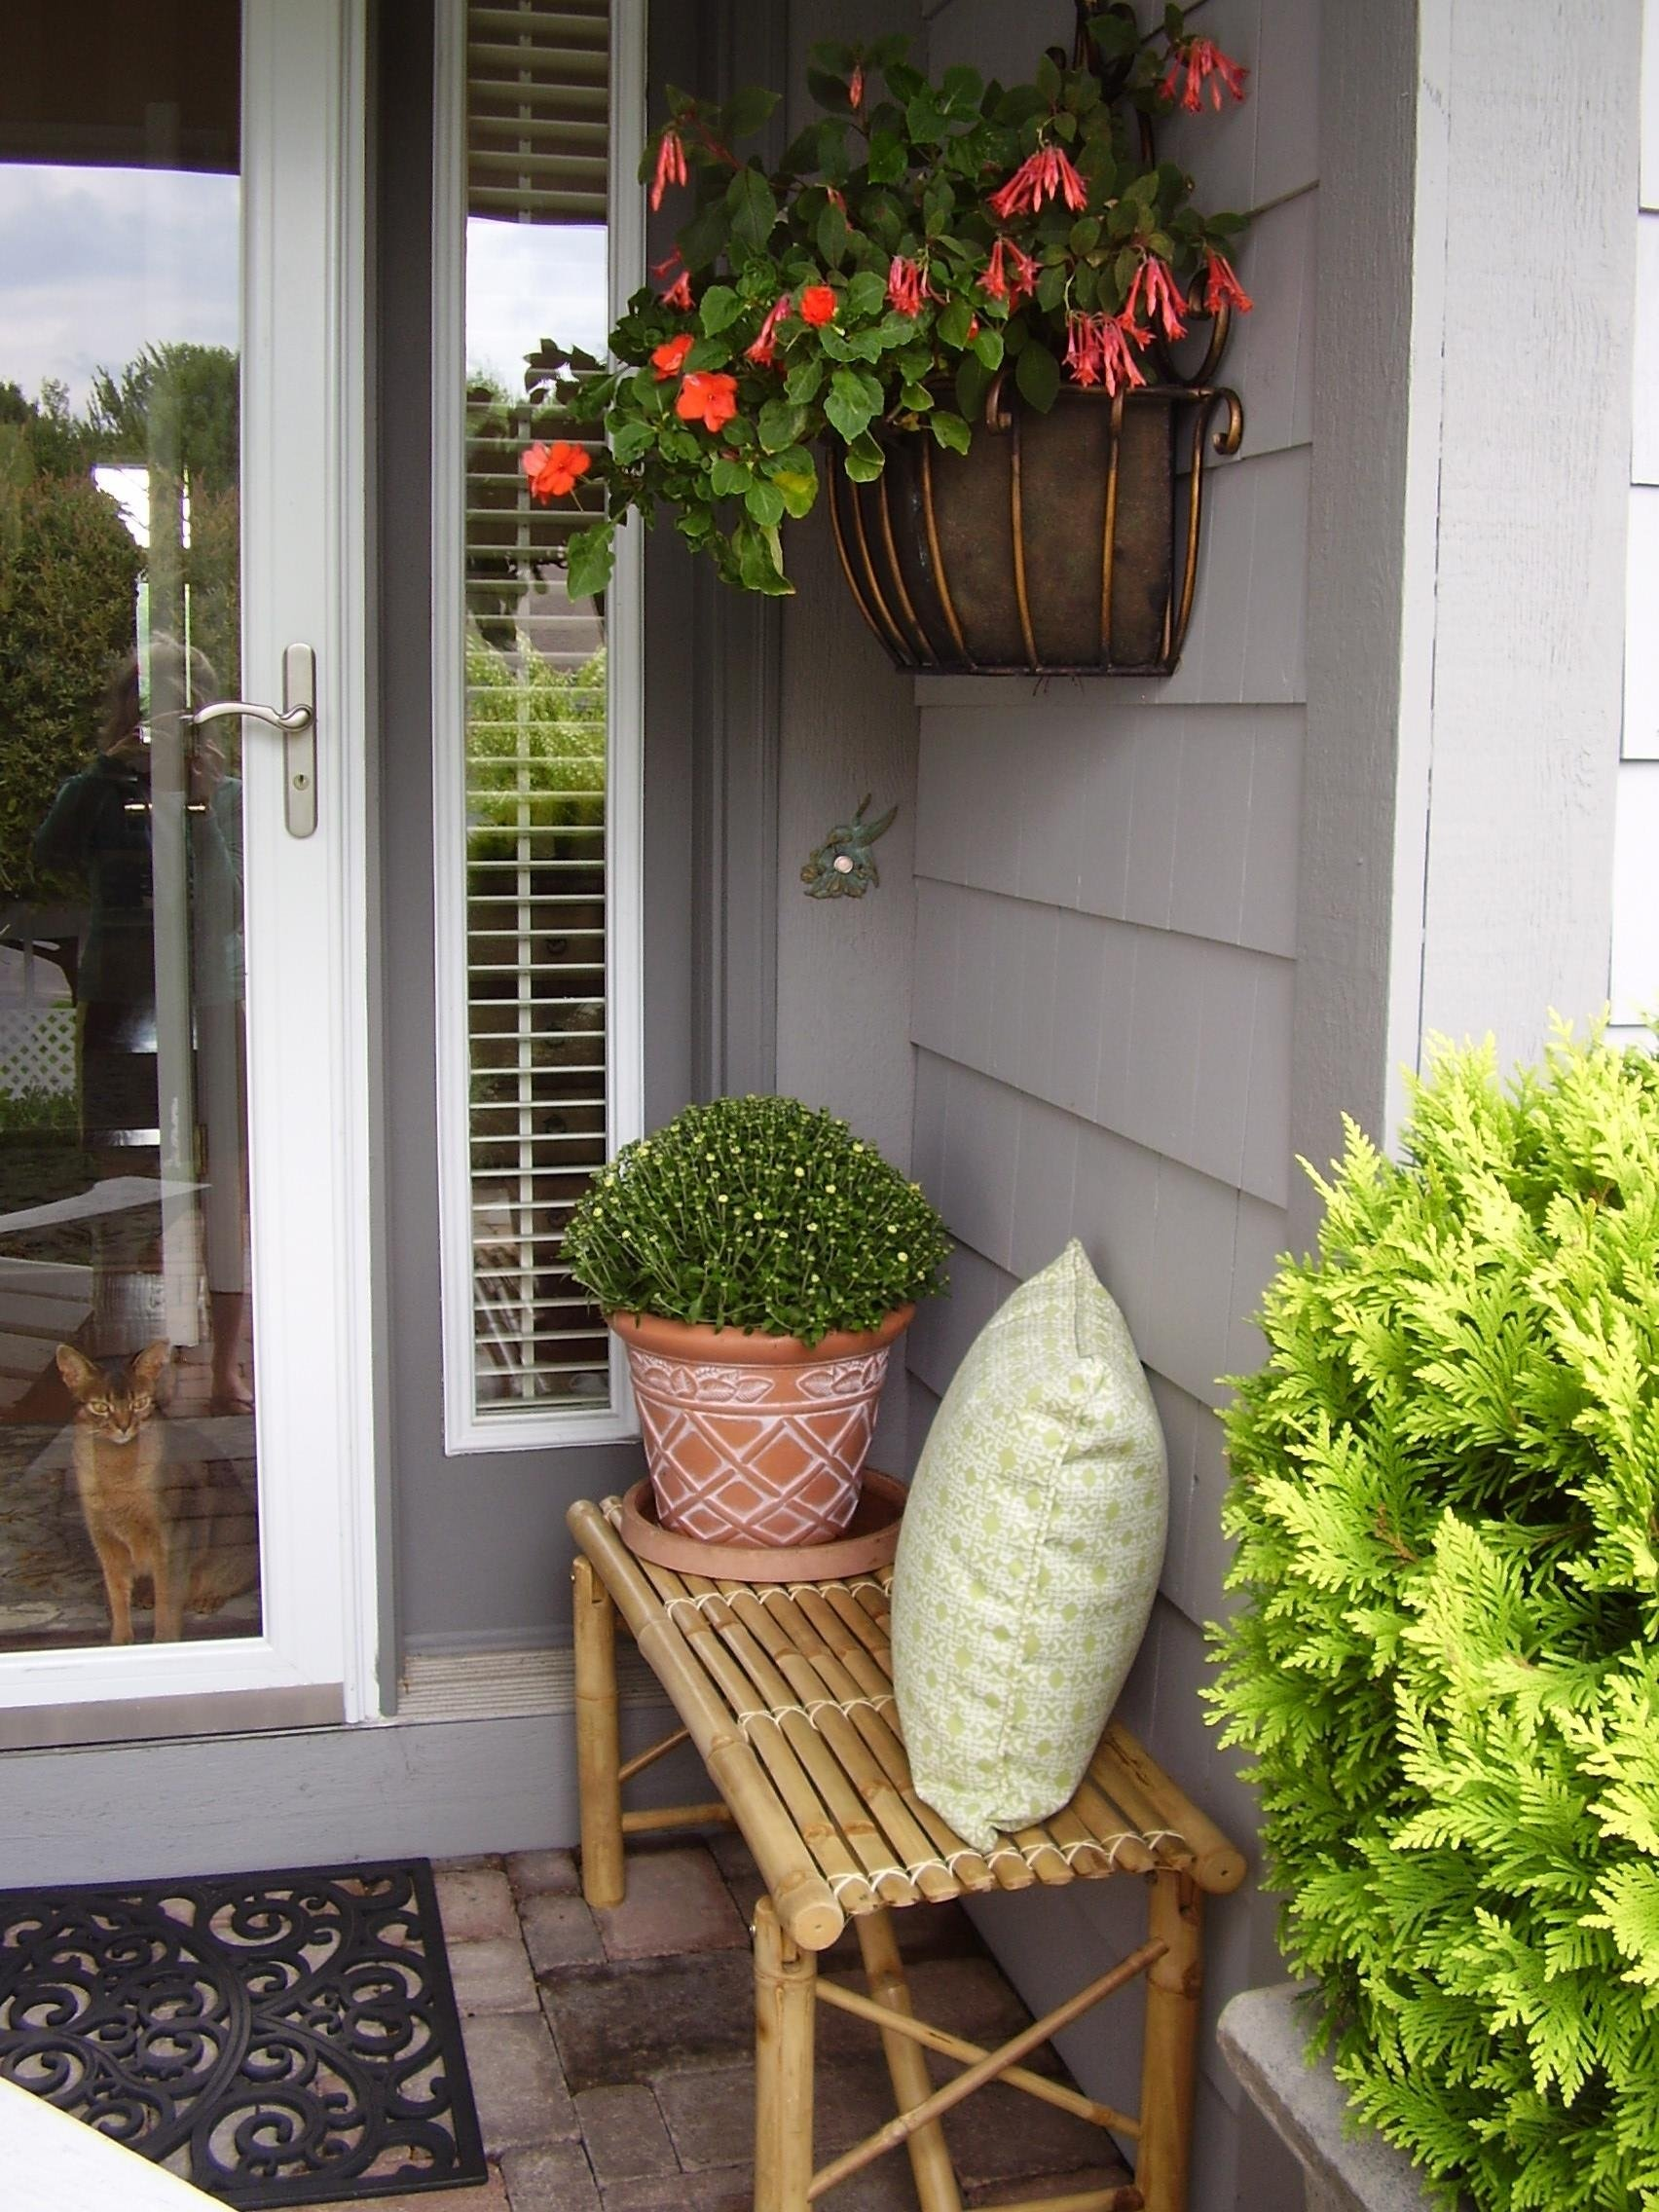 10 Elegant Small Front Porch Decorating Ideas images about small porch welcome fall ideas front trends weinda com 2021